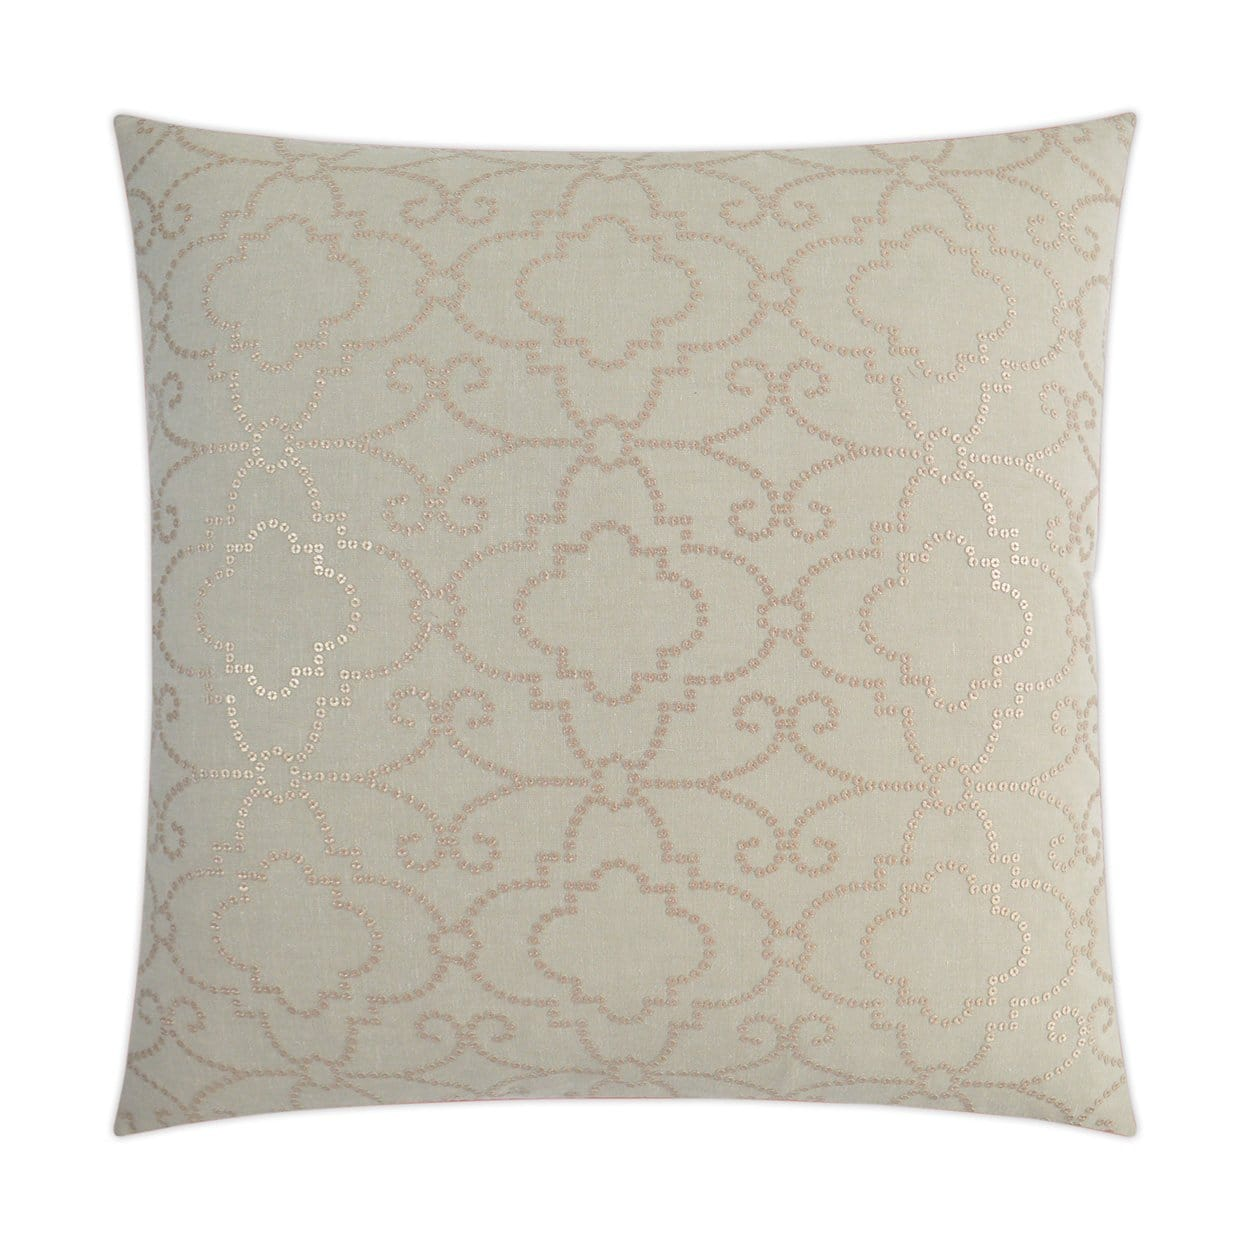 D.V. Kap D.V. Kap Wow Factor Pillow - Available in 2 Colors Gilt 2922-G